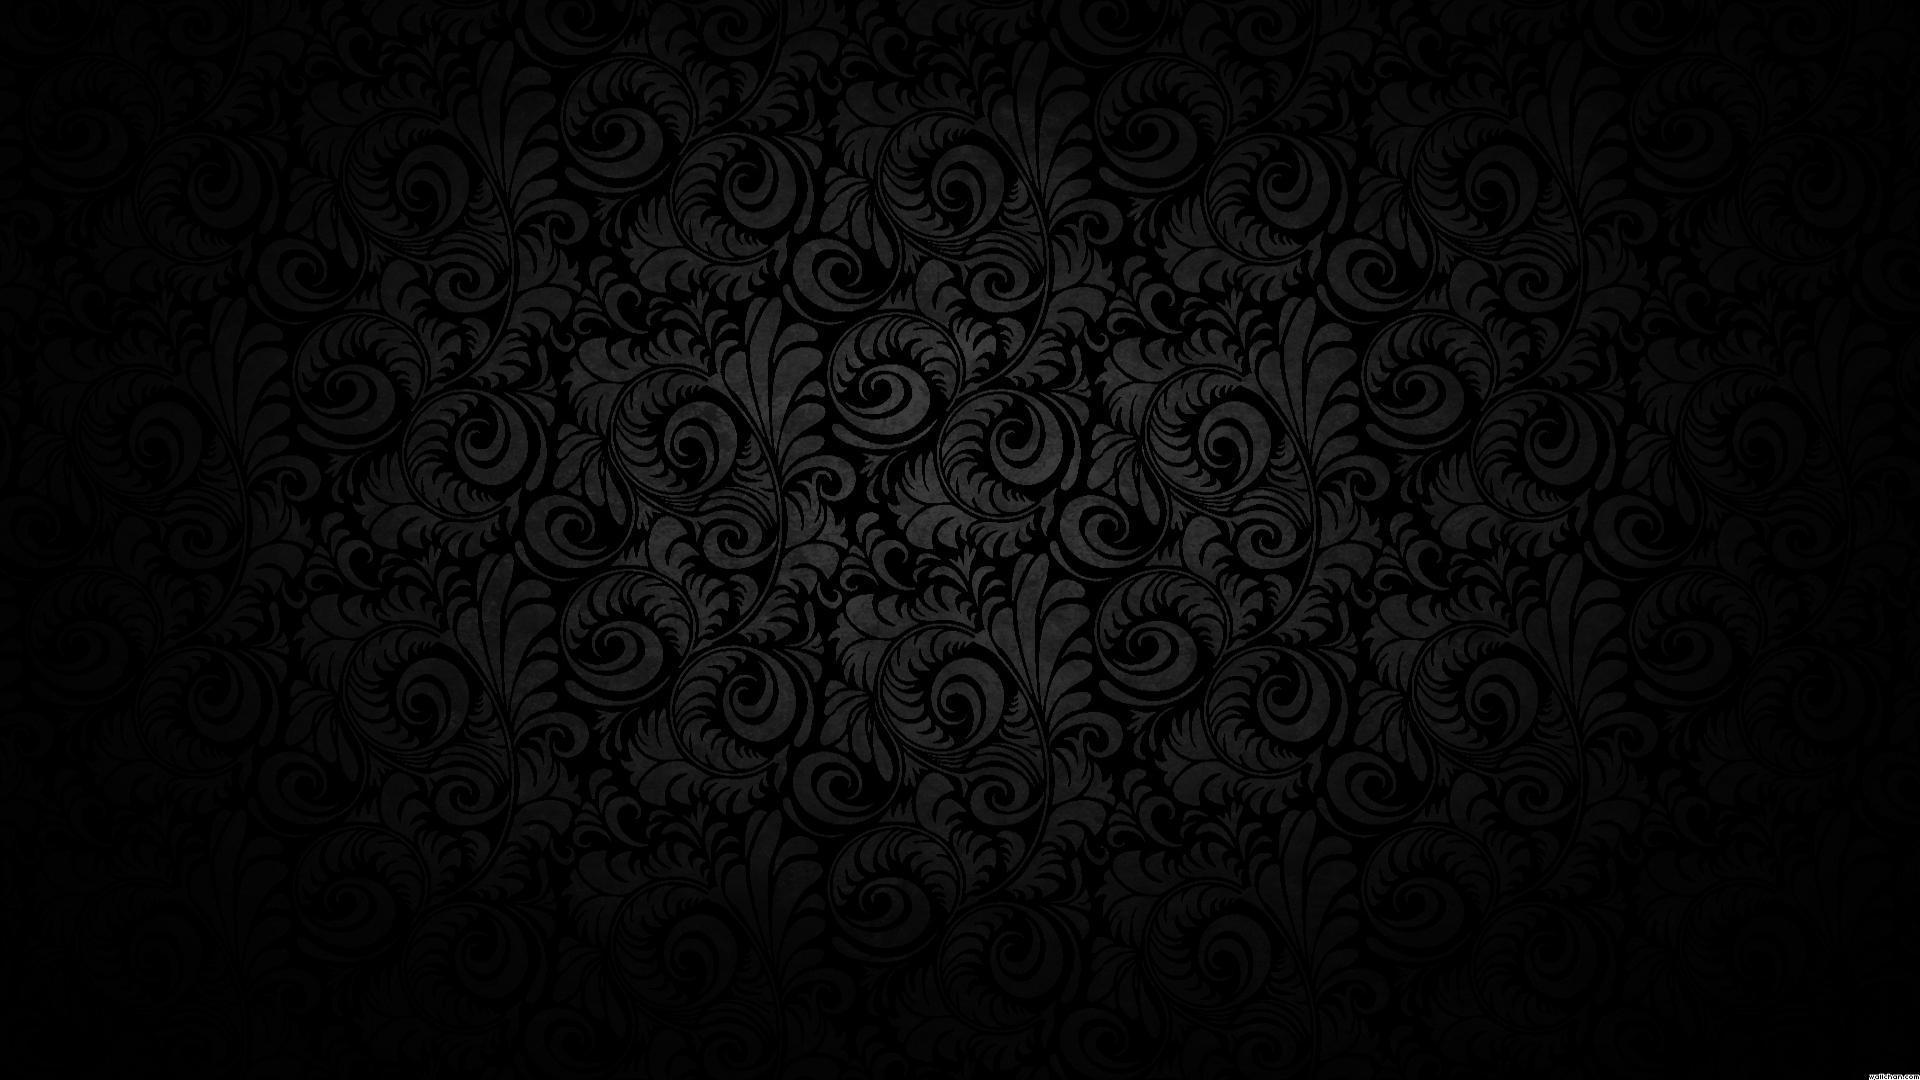 black elegant wallpapers wallpaper cave black elegant wallpapers wallpaper cave